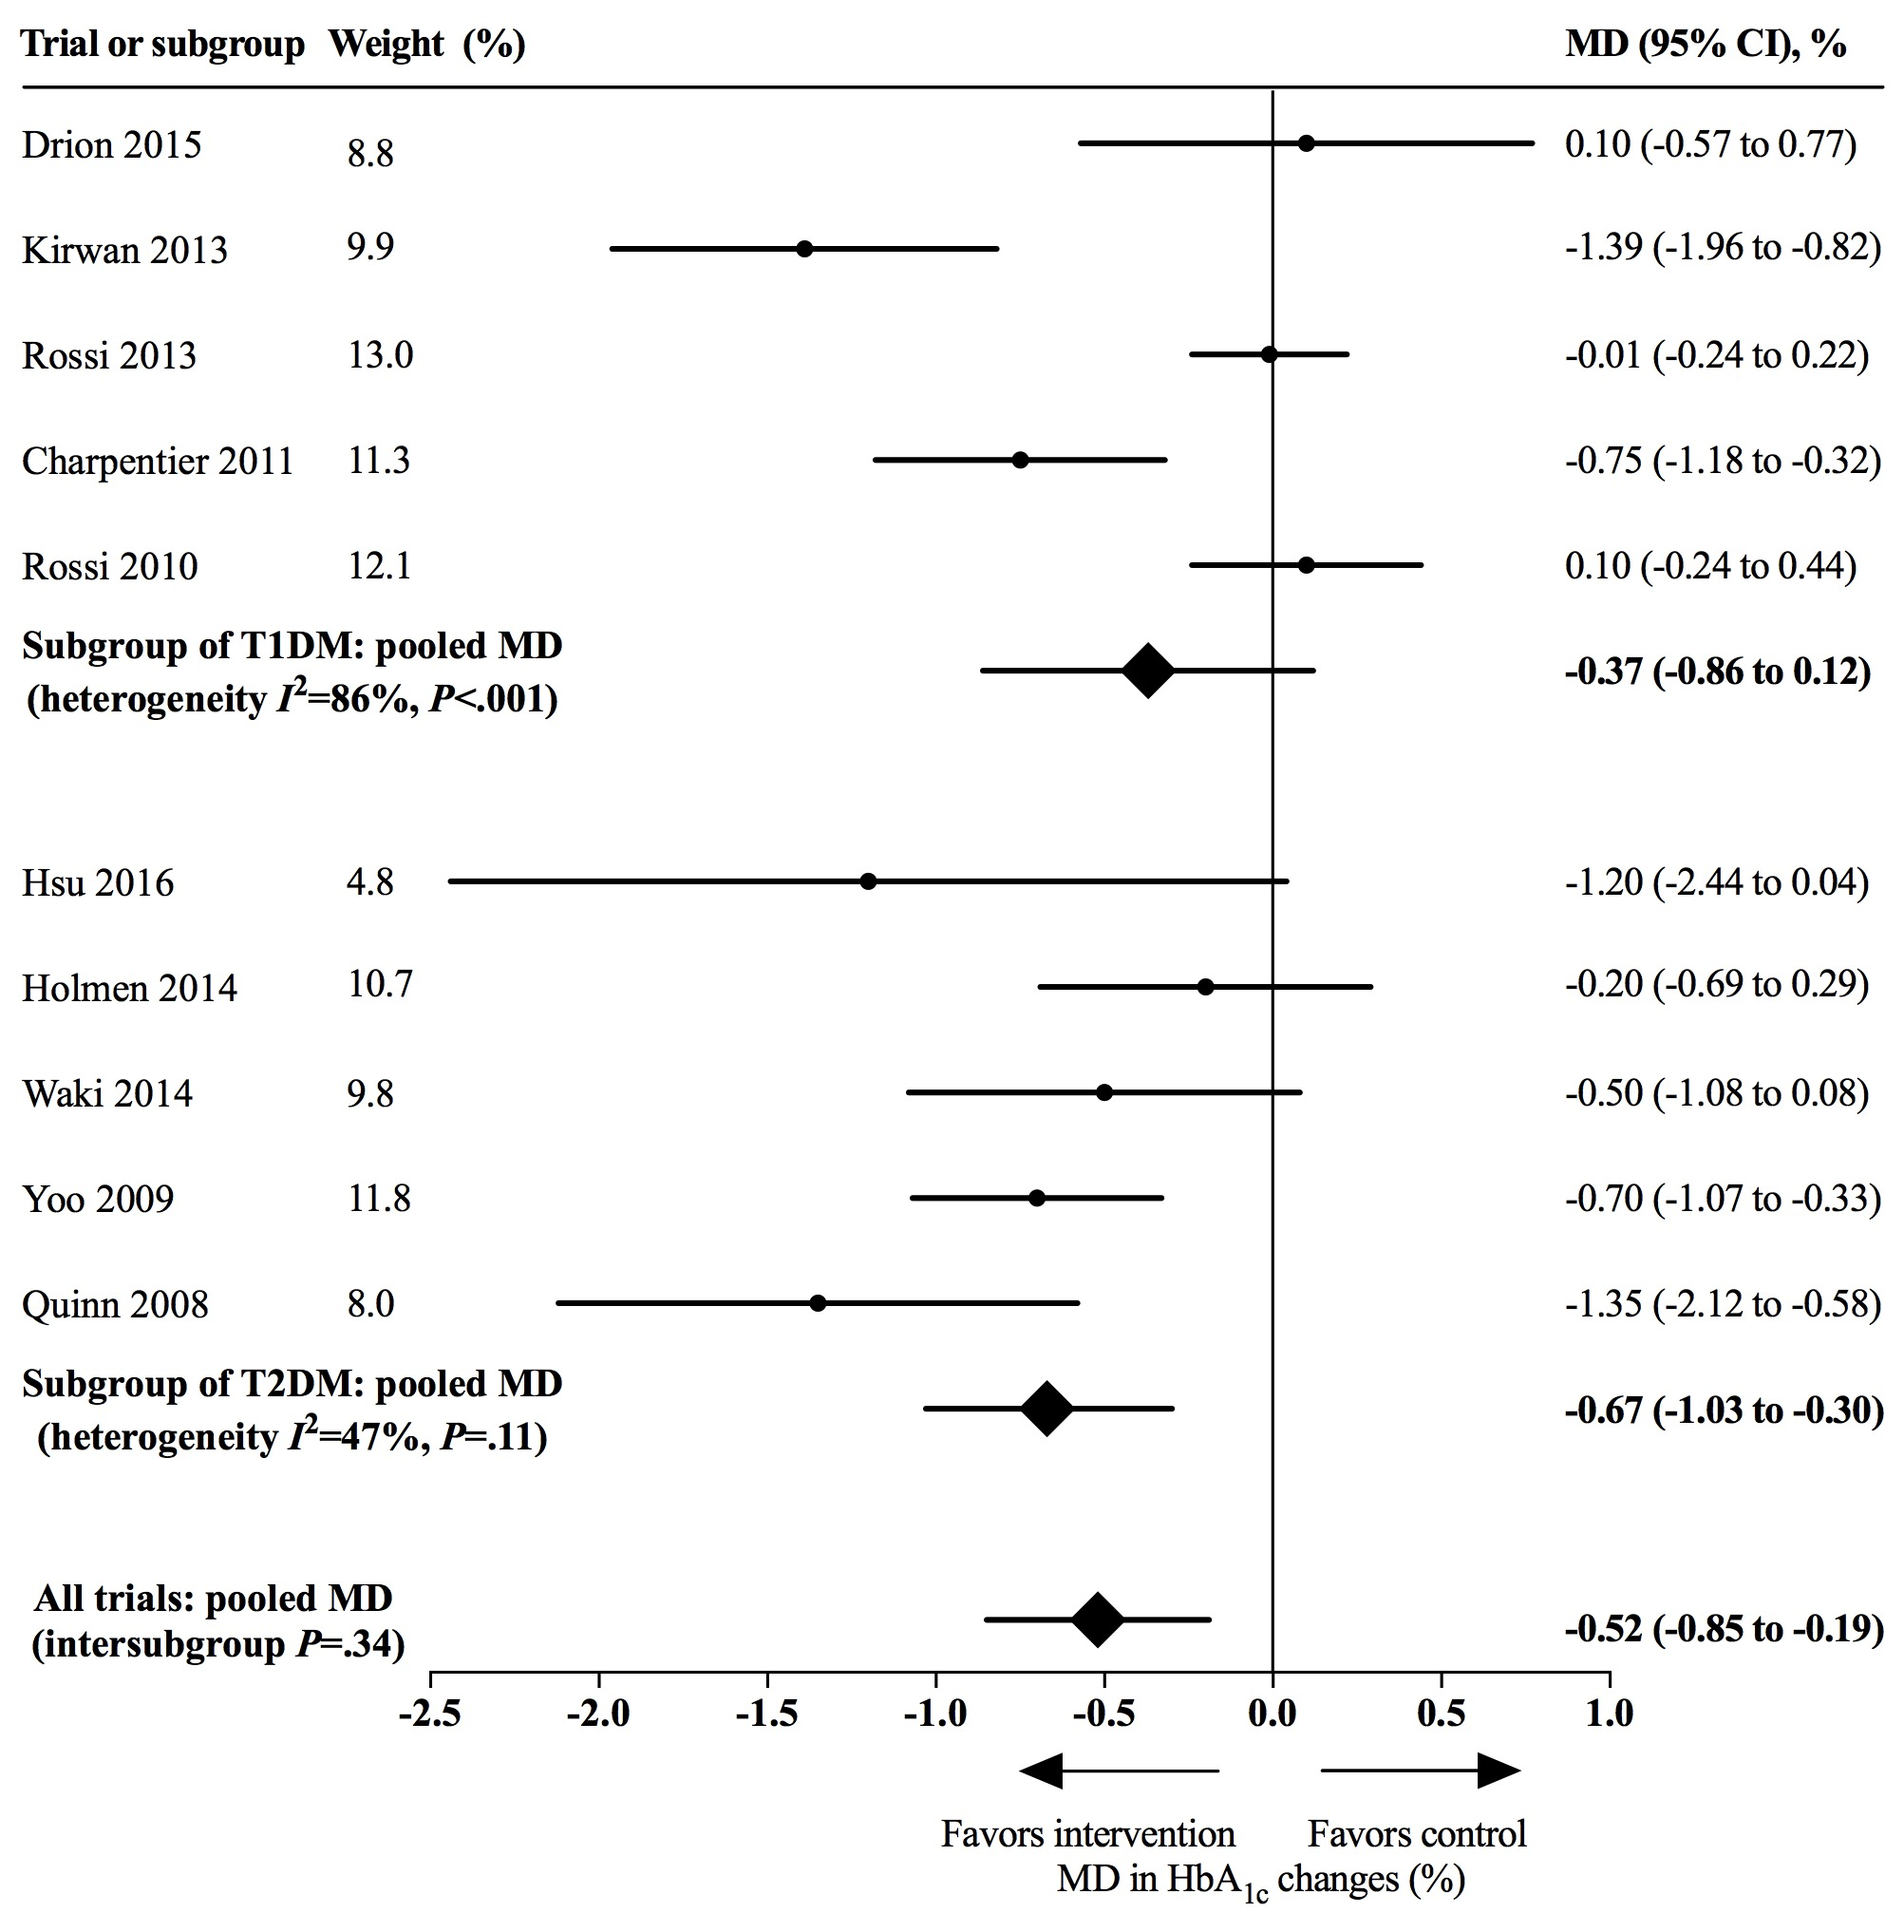 Effects of app-based mobile health interventions on hemoglobin A1c (HbA1c)  for patients with type 1 diabetes (T1DM) and type 2 diabetes (T2DM). 84a4a354e1403